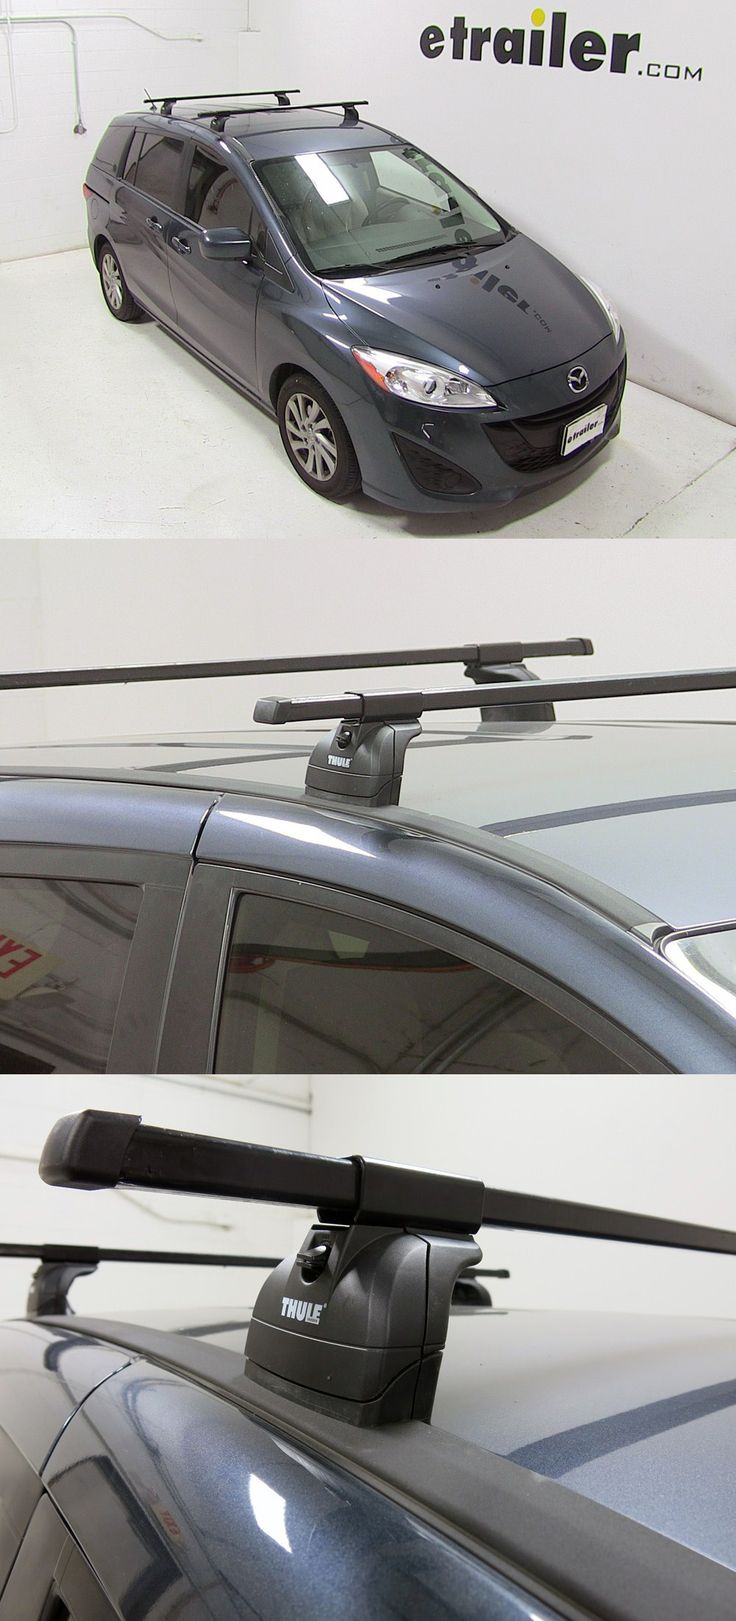 Thule Square Load Bars That Attach To The Thule Roof Rack To Create A Sturdy